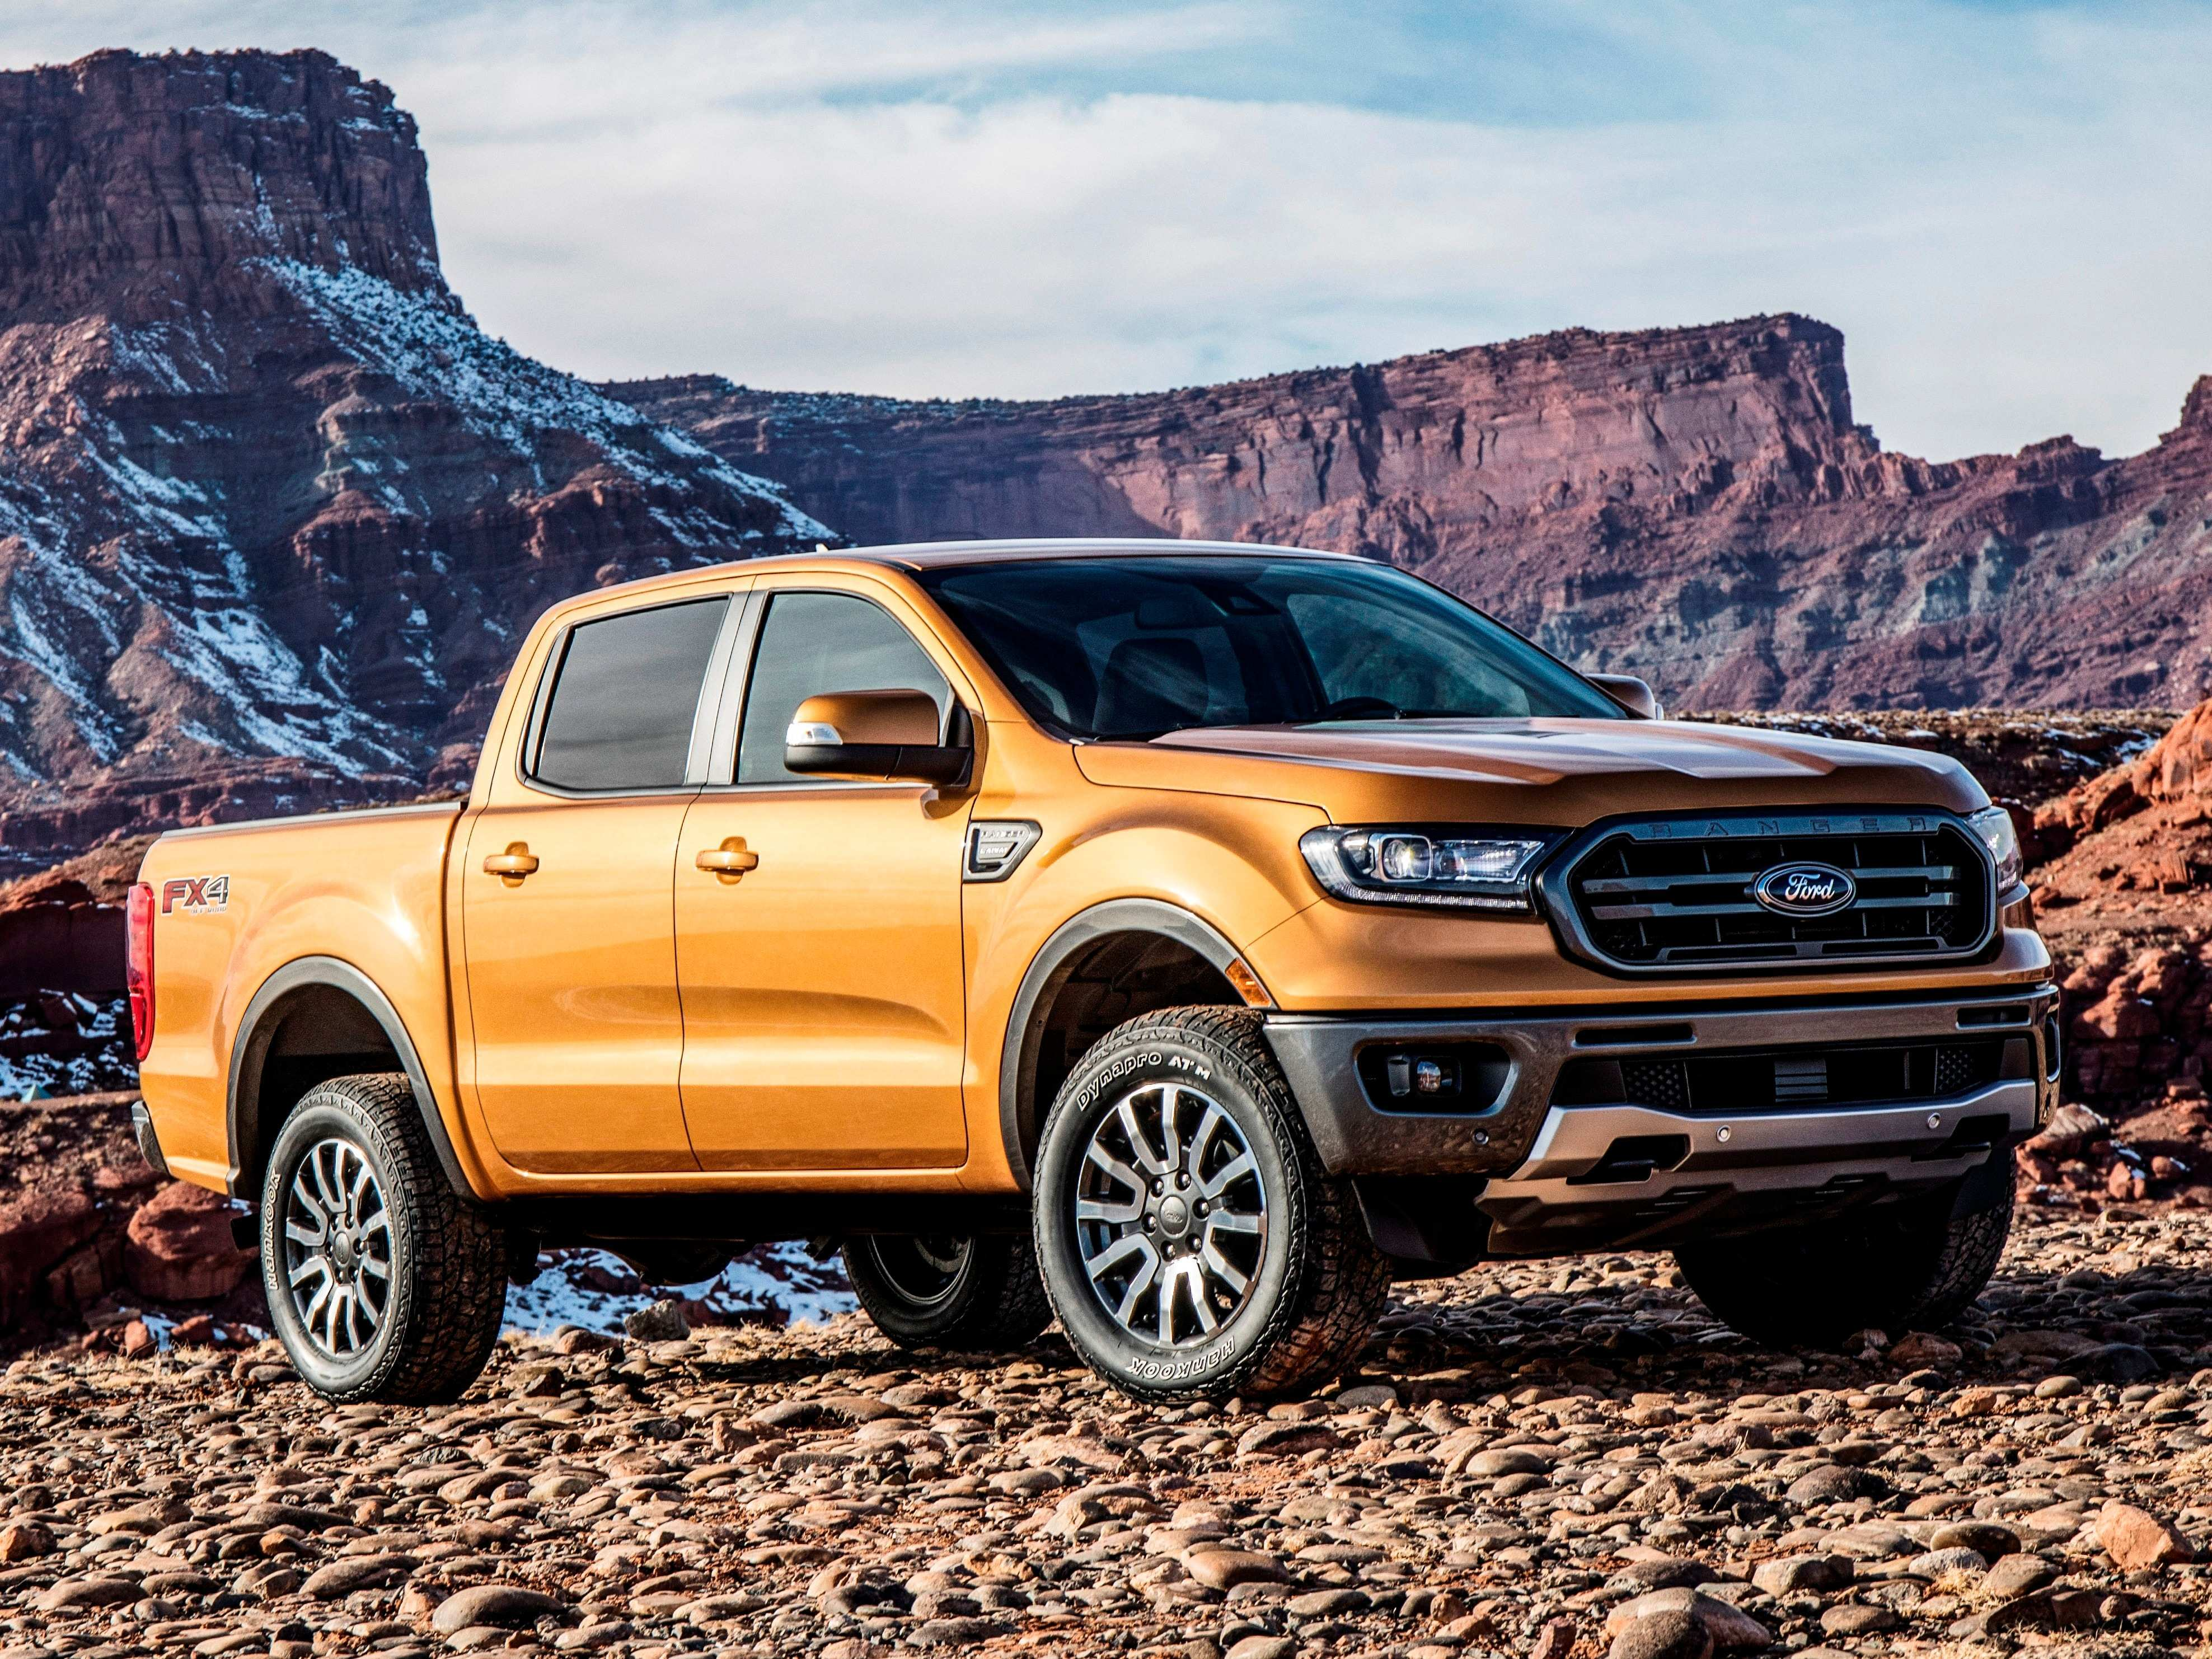 96 All New 2019 2 Door Ford Ranger Style